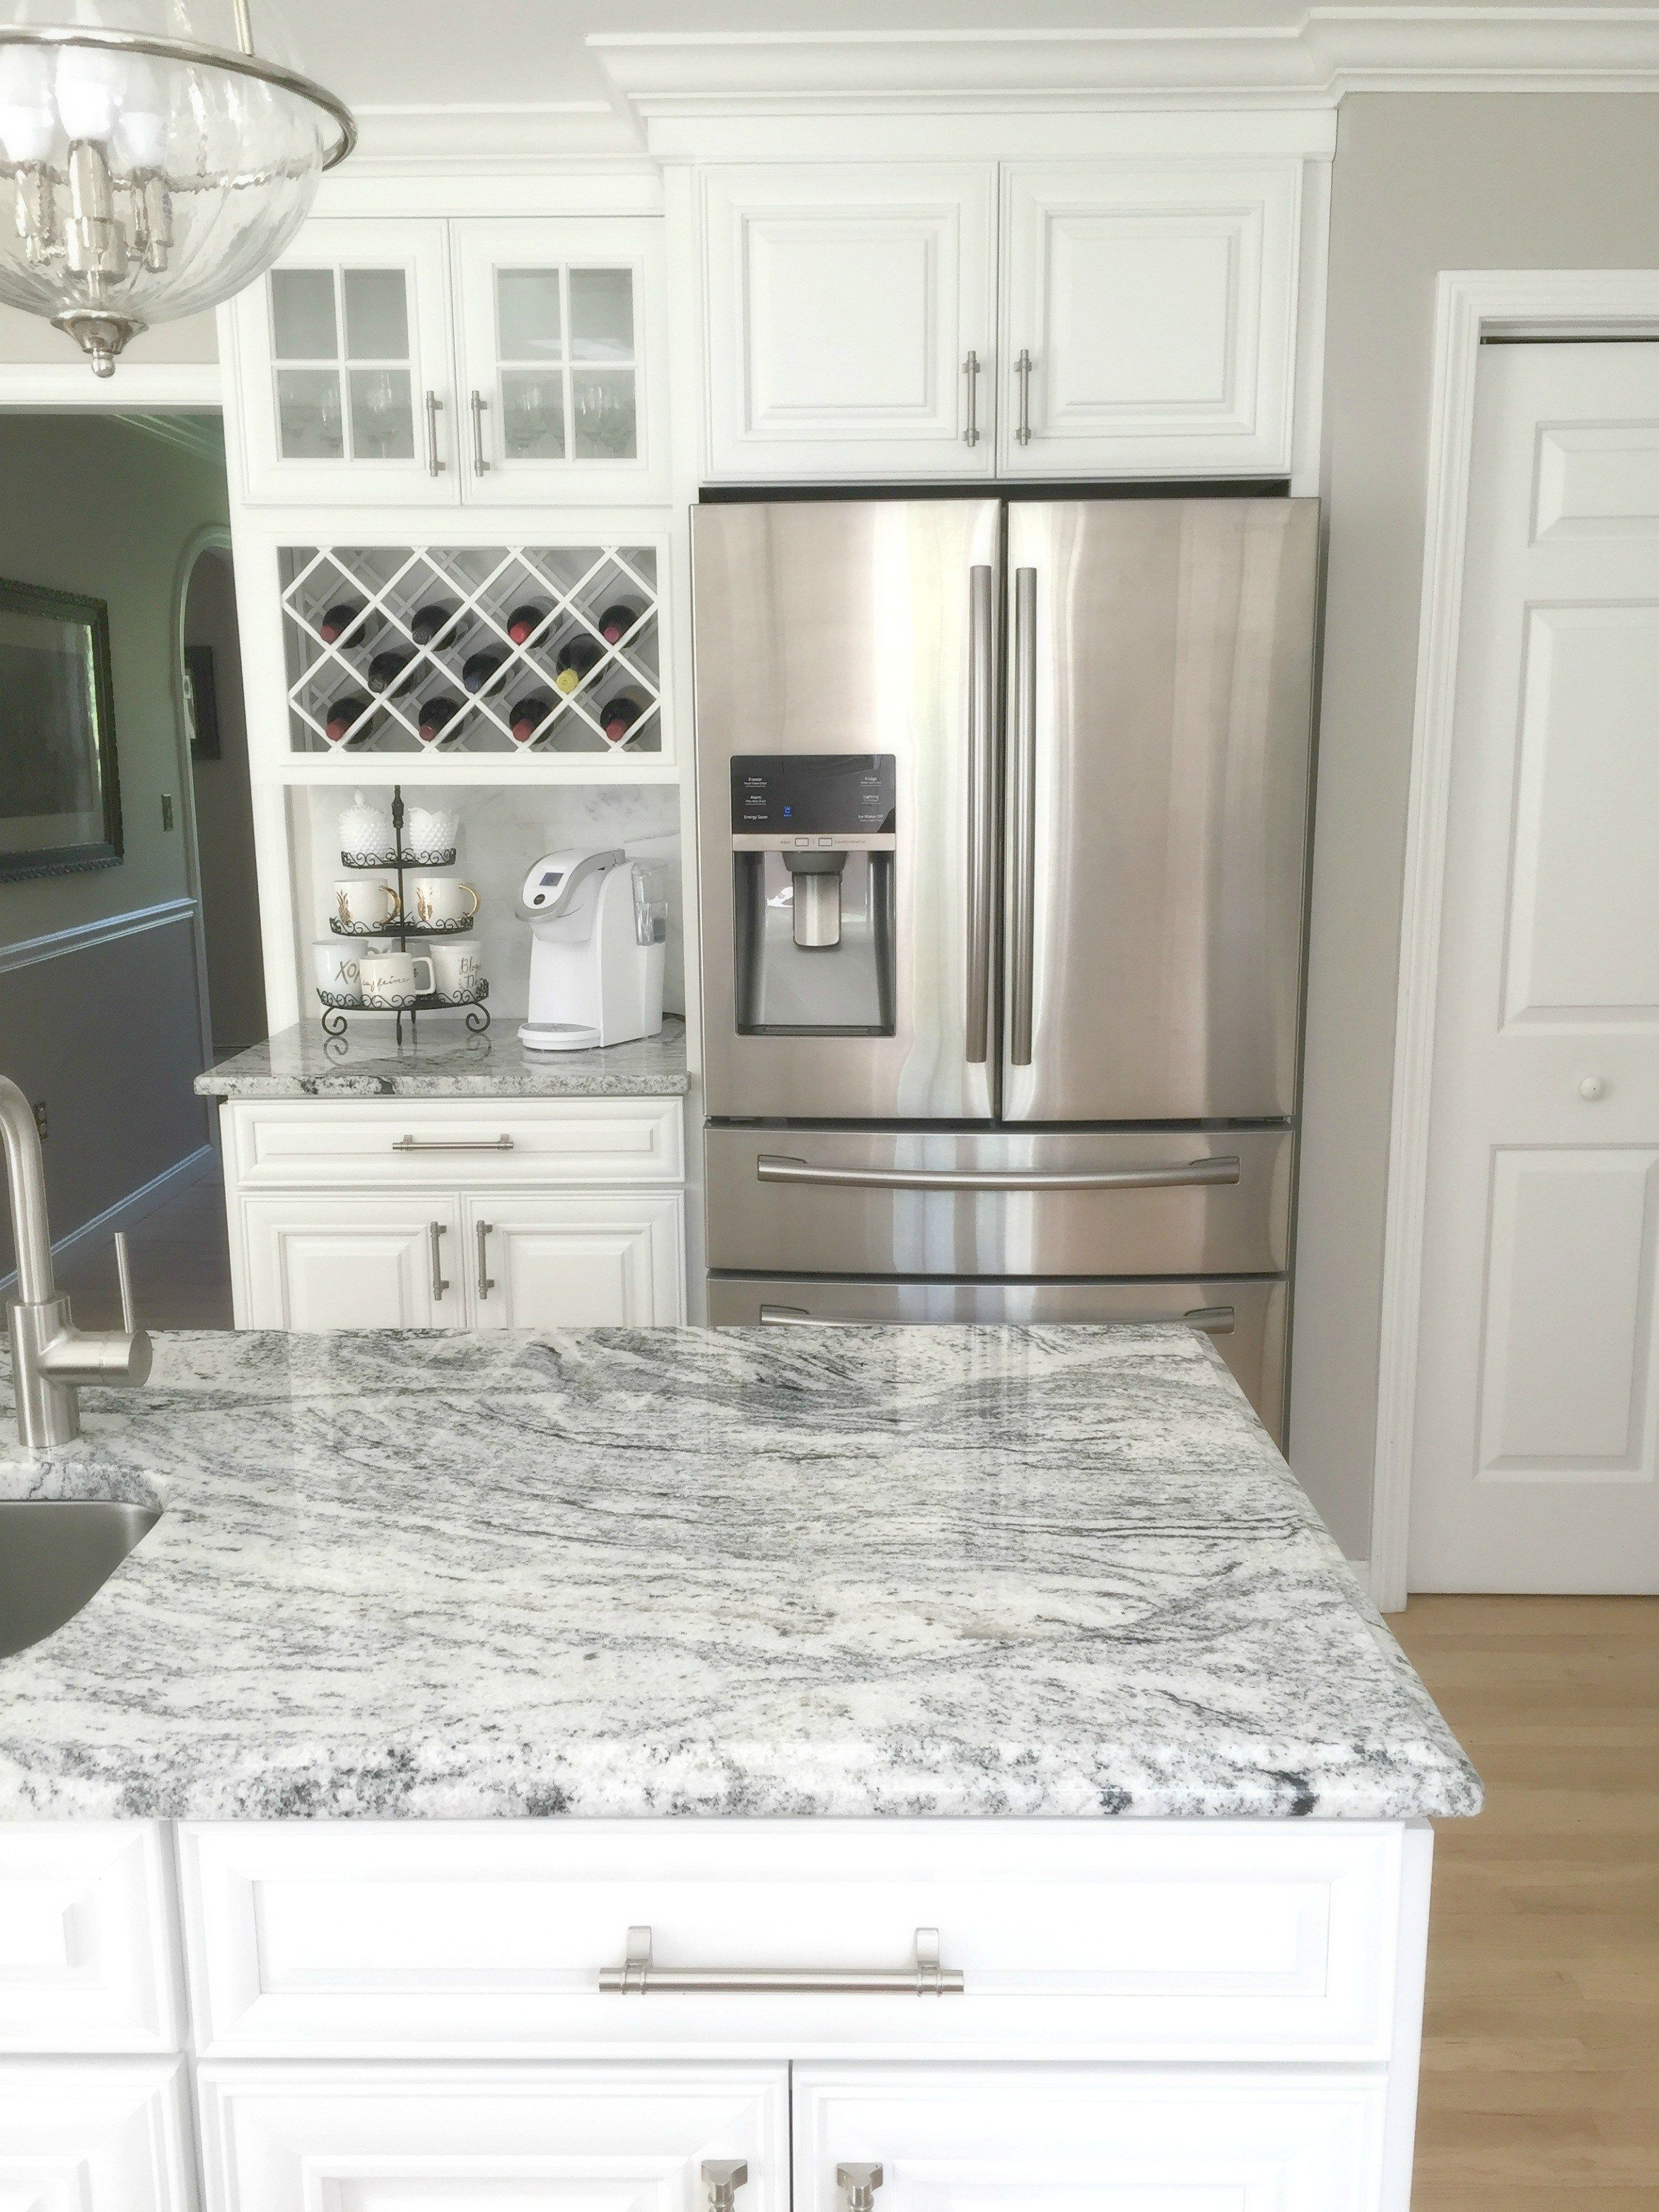 Granite Choices For White Cabinets Transitional Kitchens Must Haves Viscon White Granite